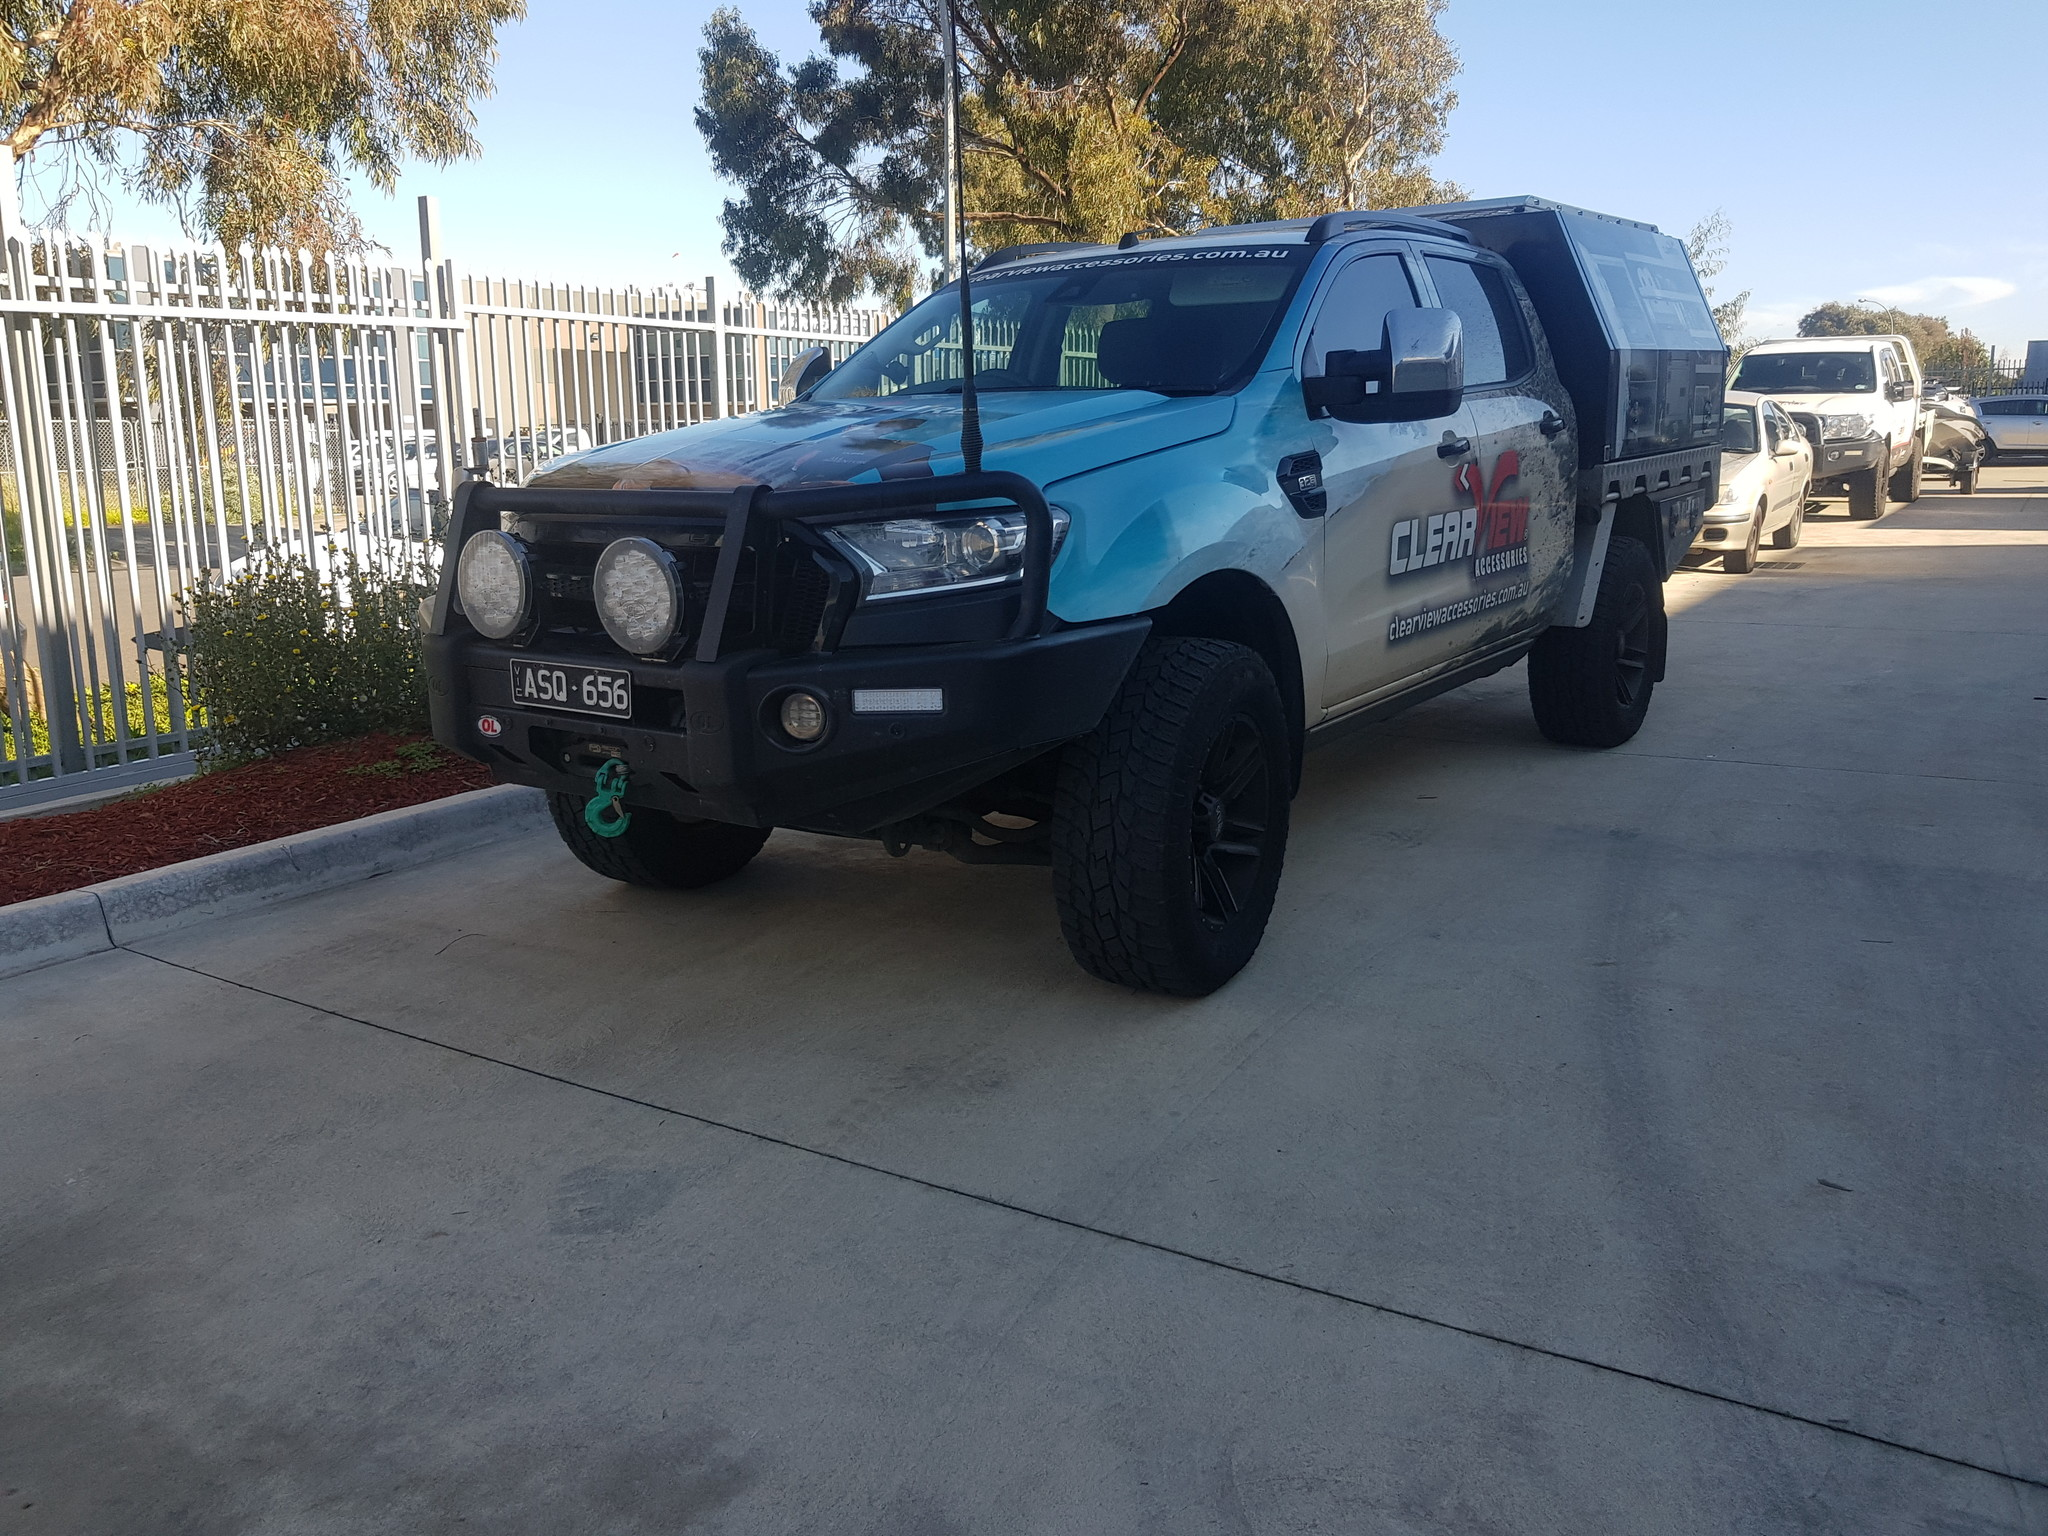 Toyota NEXT GENERATION: Clearview Towing Mirror Ford Ranger PX